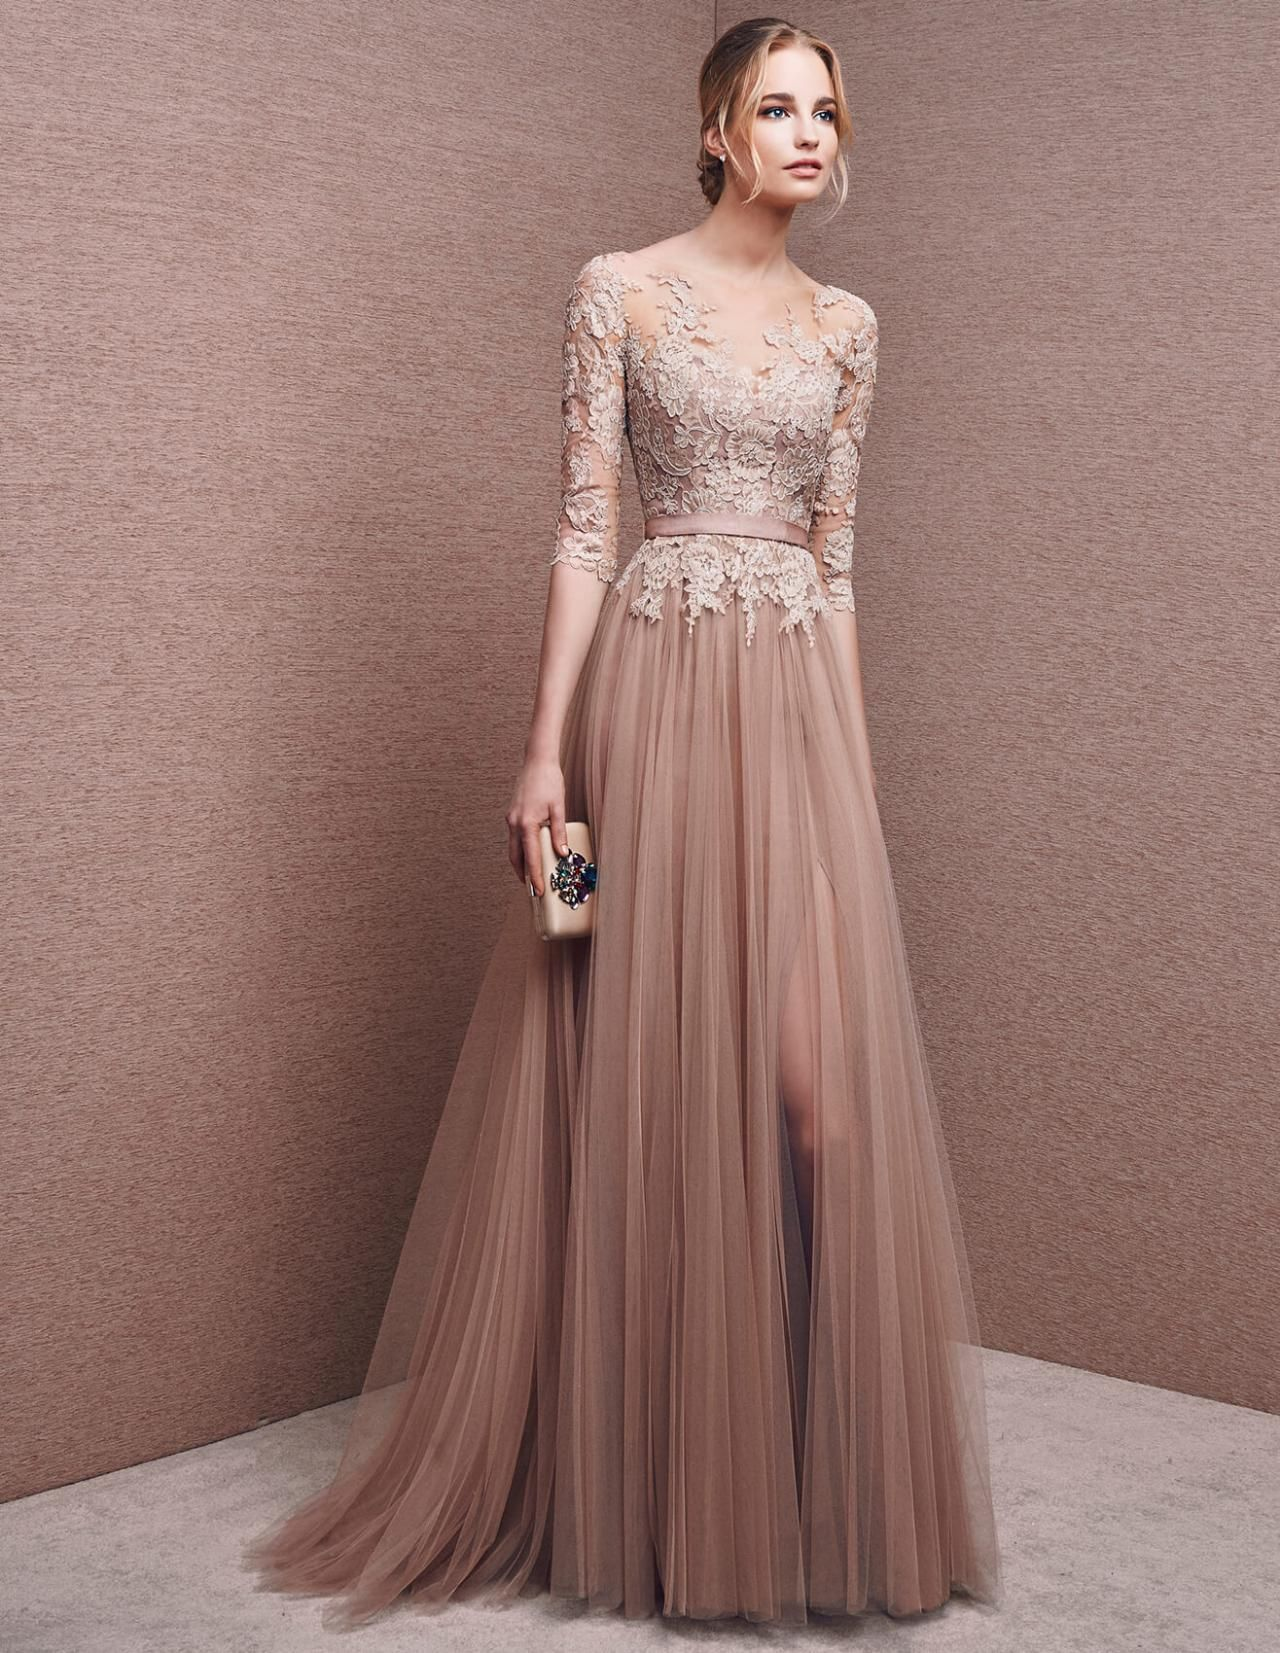 Nude and Blush Gowns | Gowns | Pinterest | Long prom gowns, Formal ...